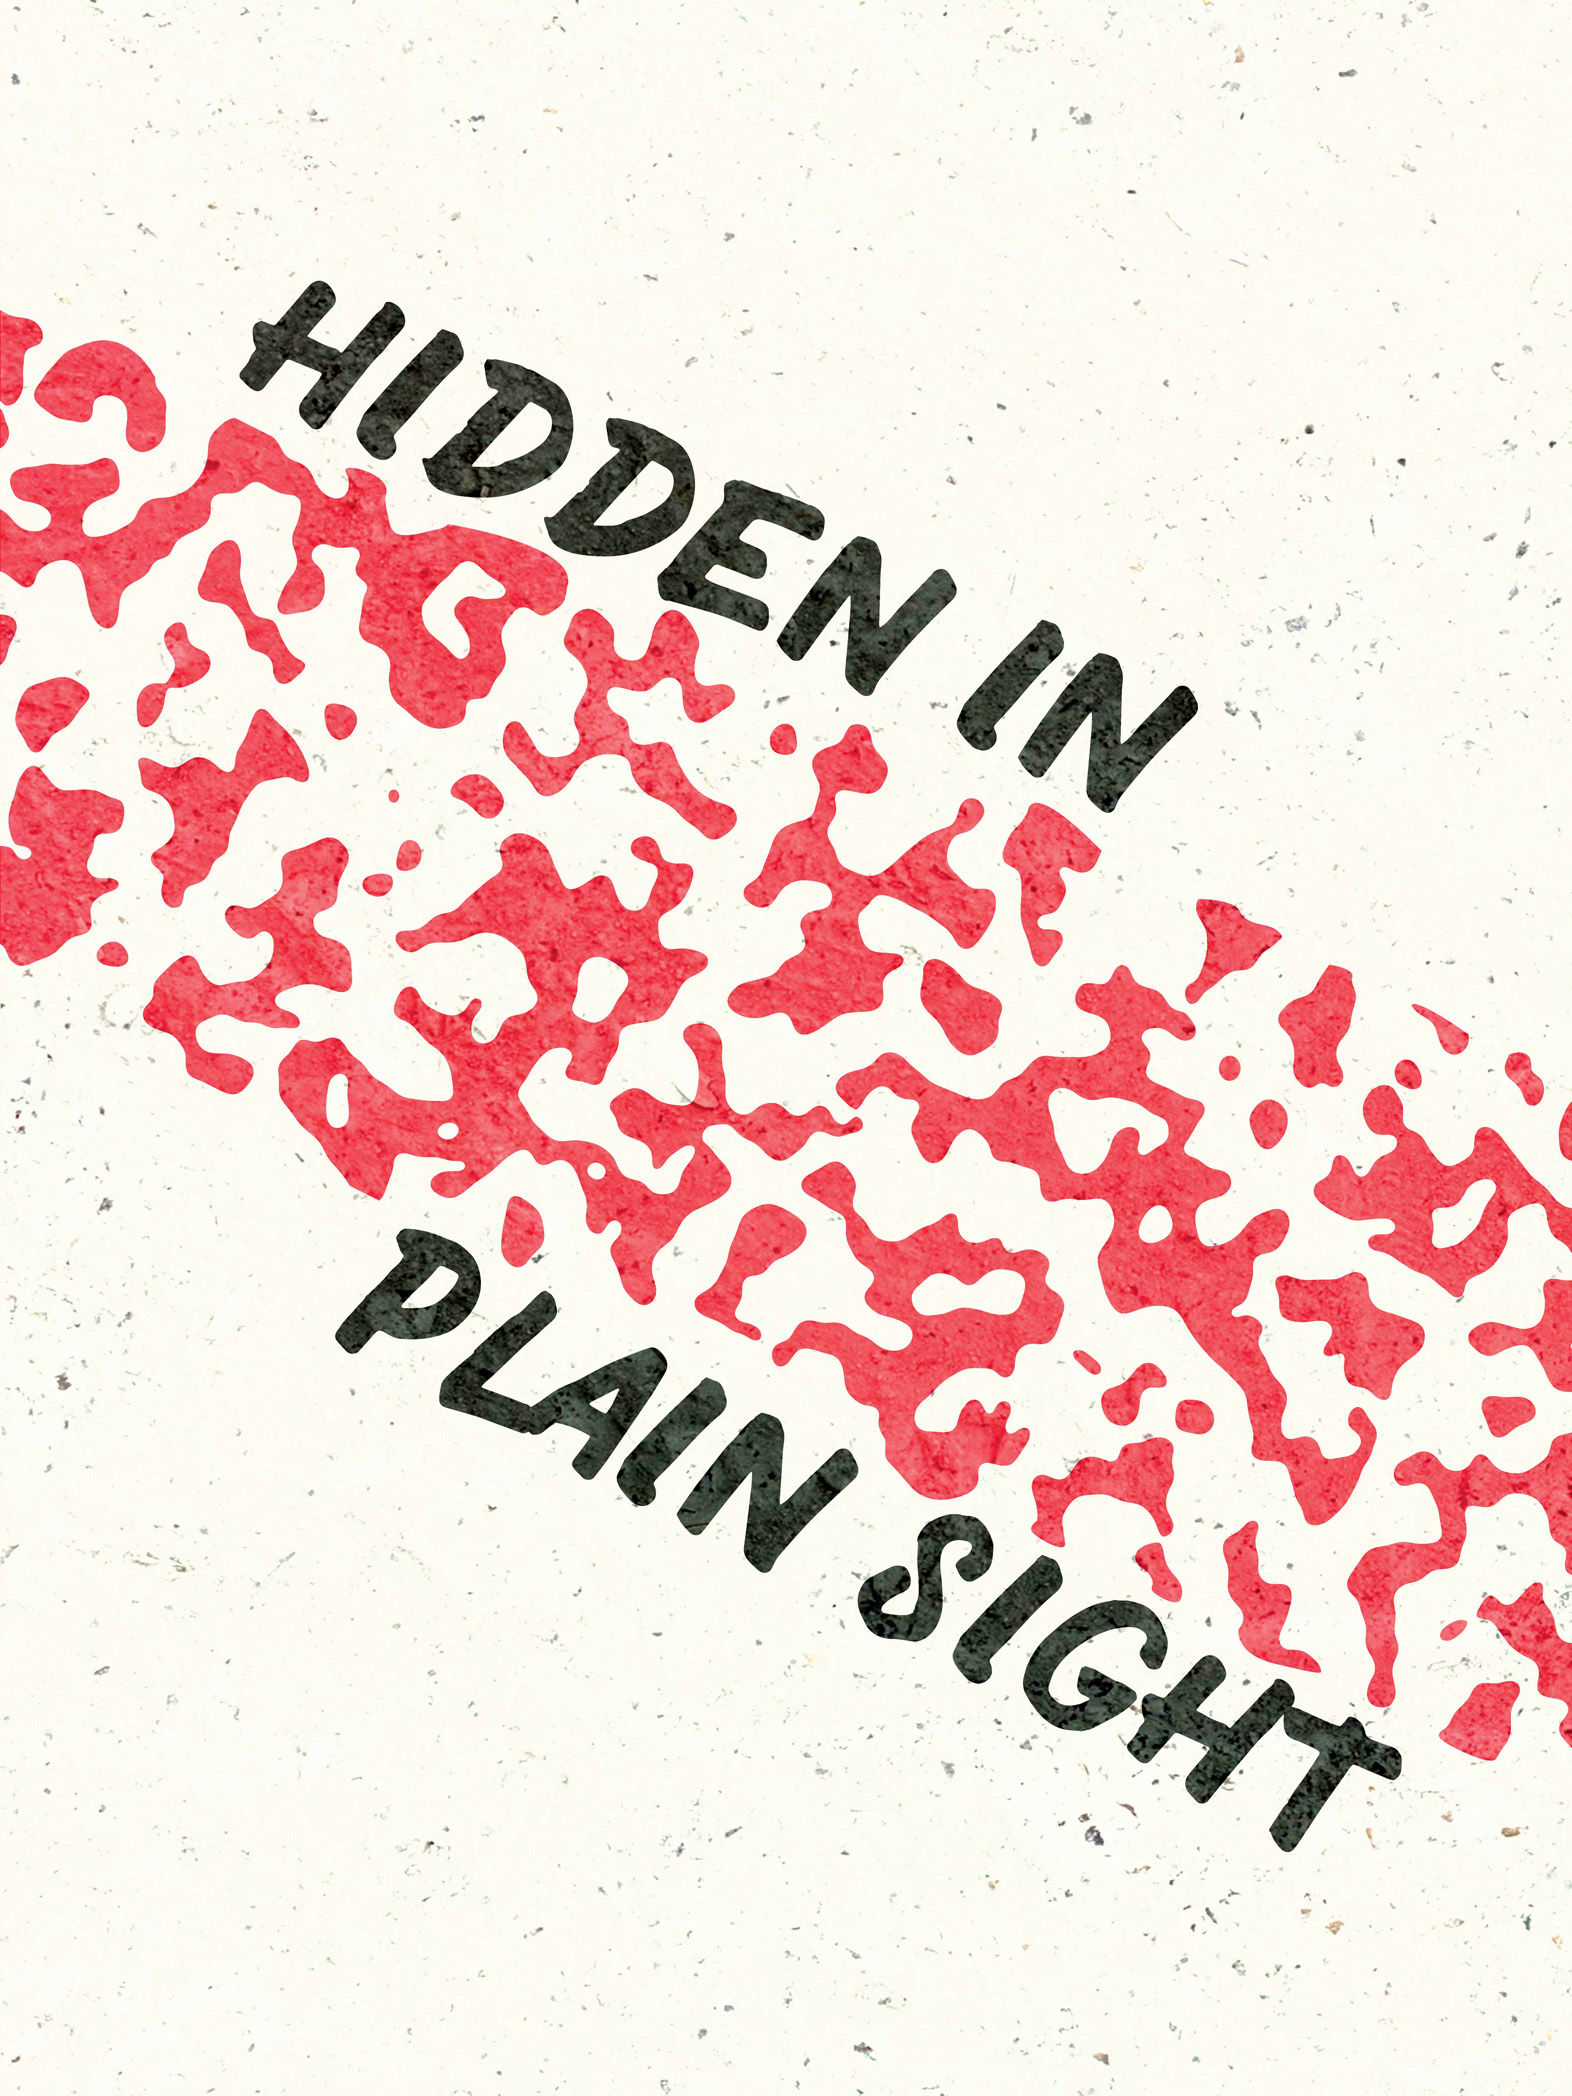 Example of a minimal use of negative space. Notice how the combination of the red and the negative space around create a camouflage effect.  Hidden in Plain Sight  by Samuel J. Stroud. Taken from the  Daily Posters project .